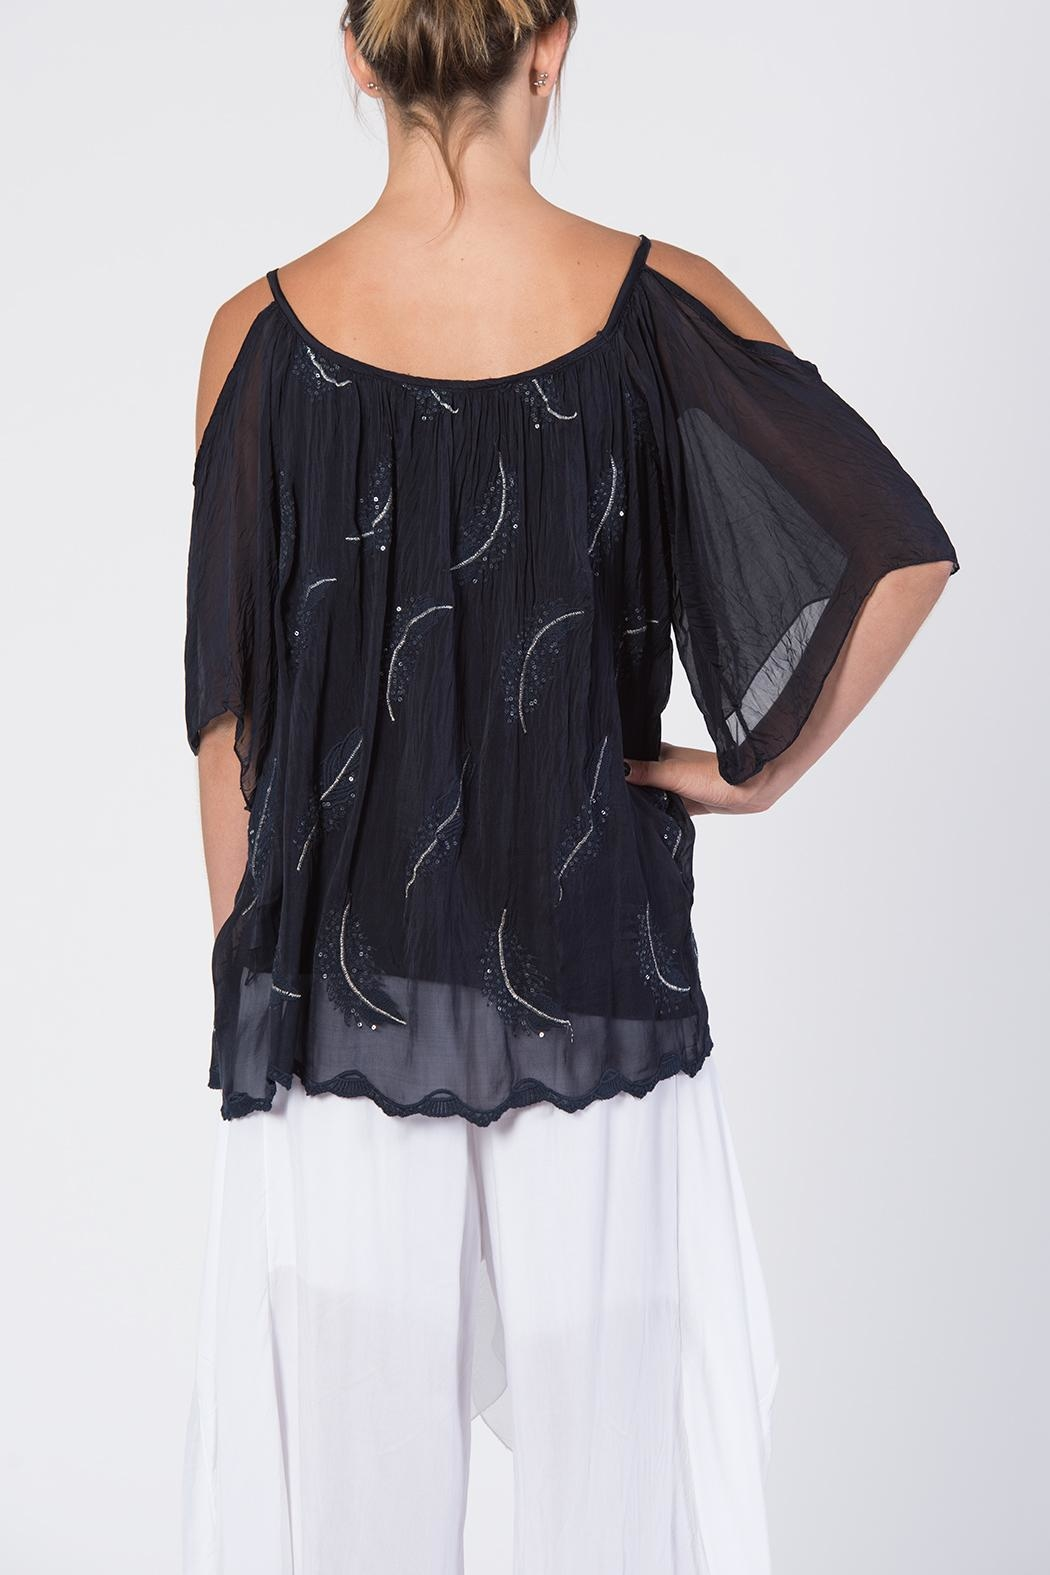 Catwalk Crystal Feather Top - Side Cropped Image